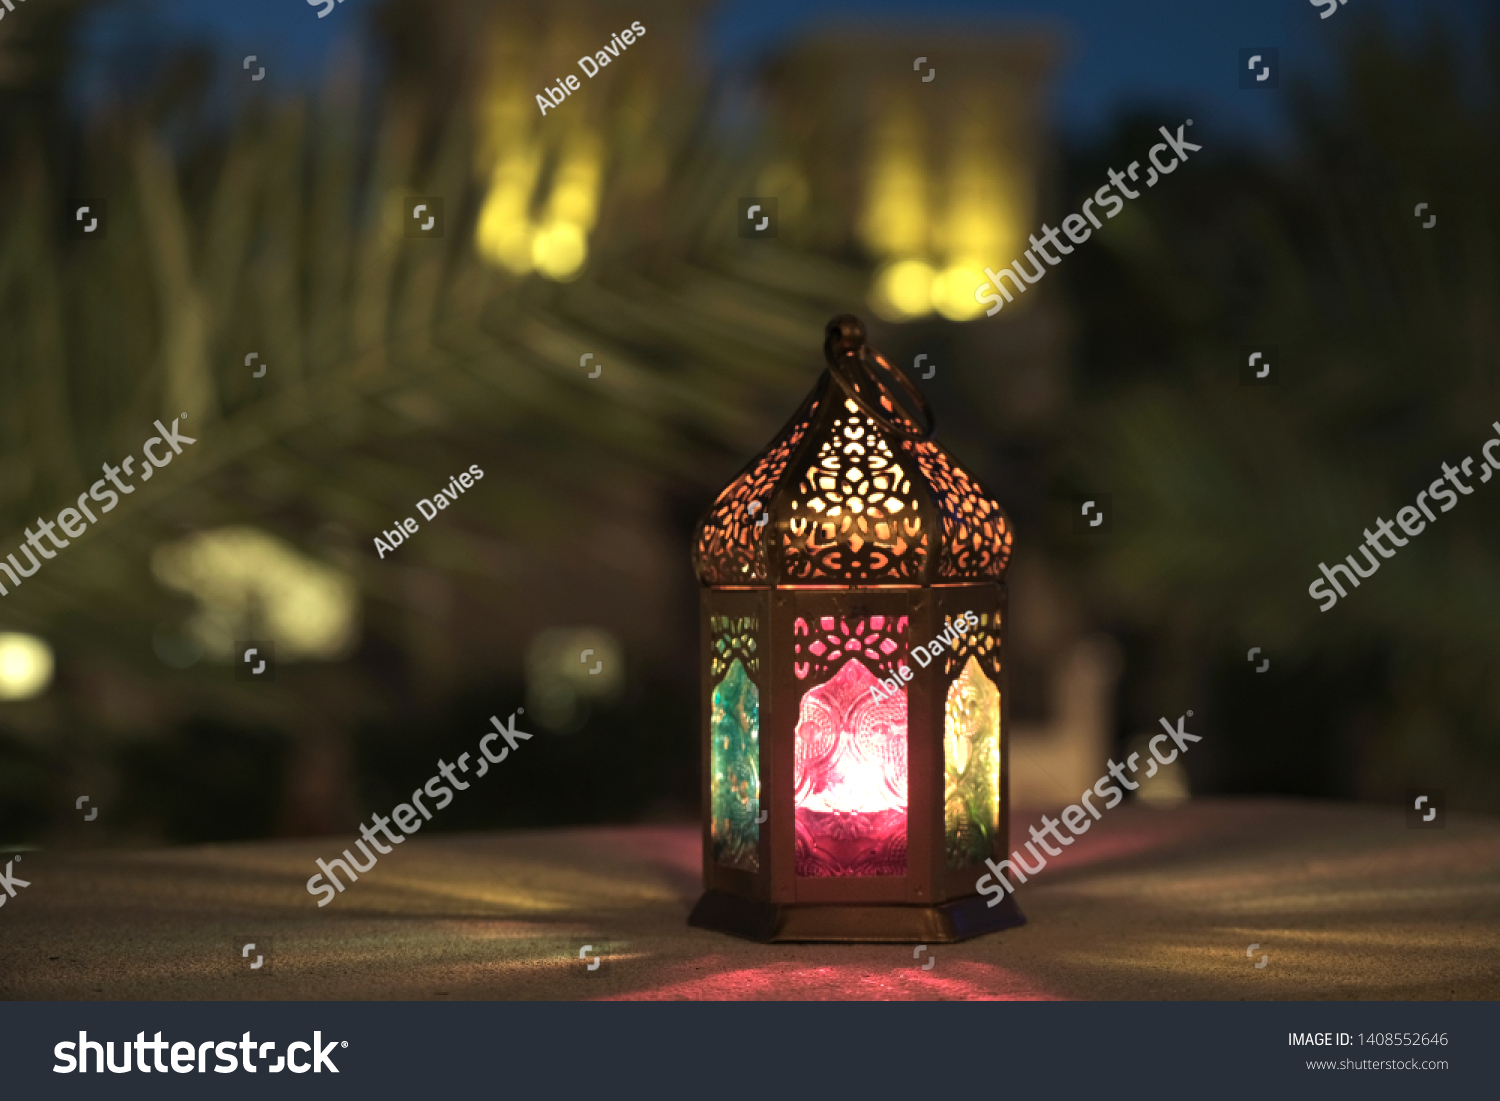 The spirit of Ramadan, a lantern decor in the heritage village area #1408552646